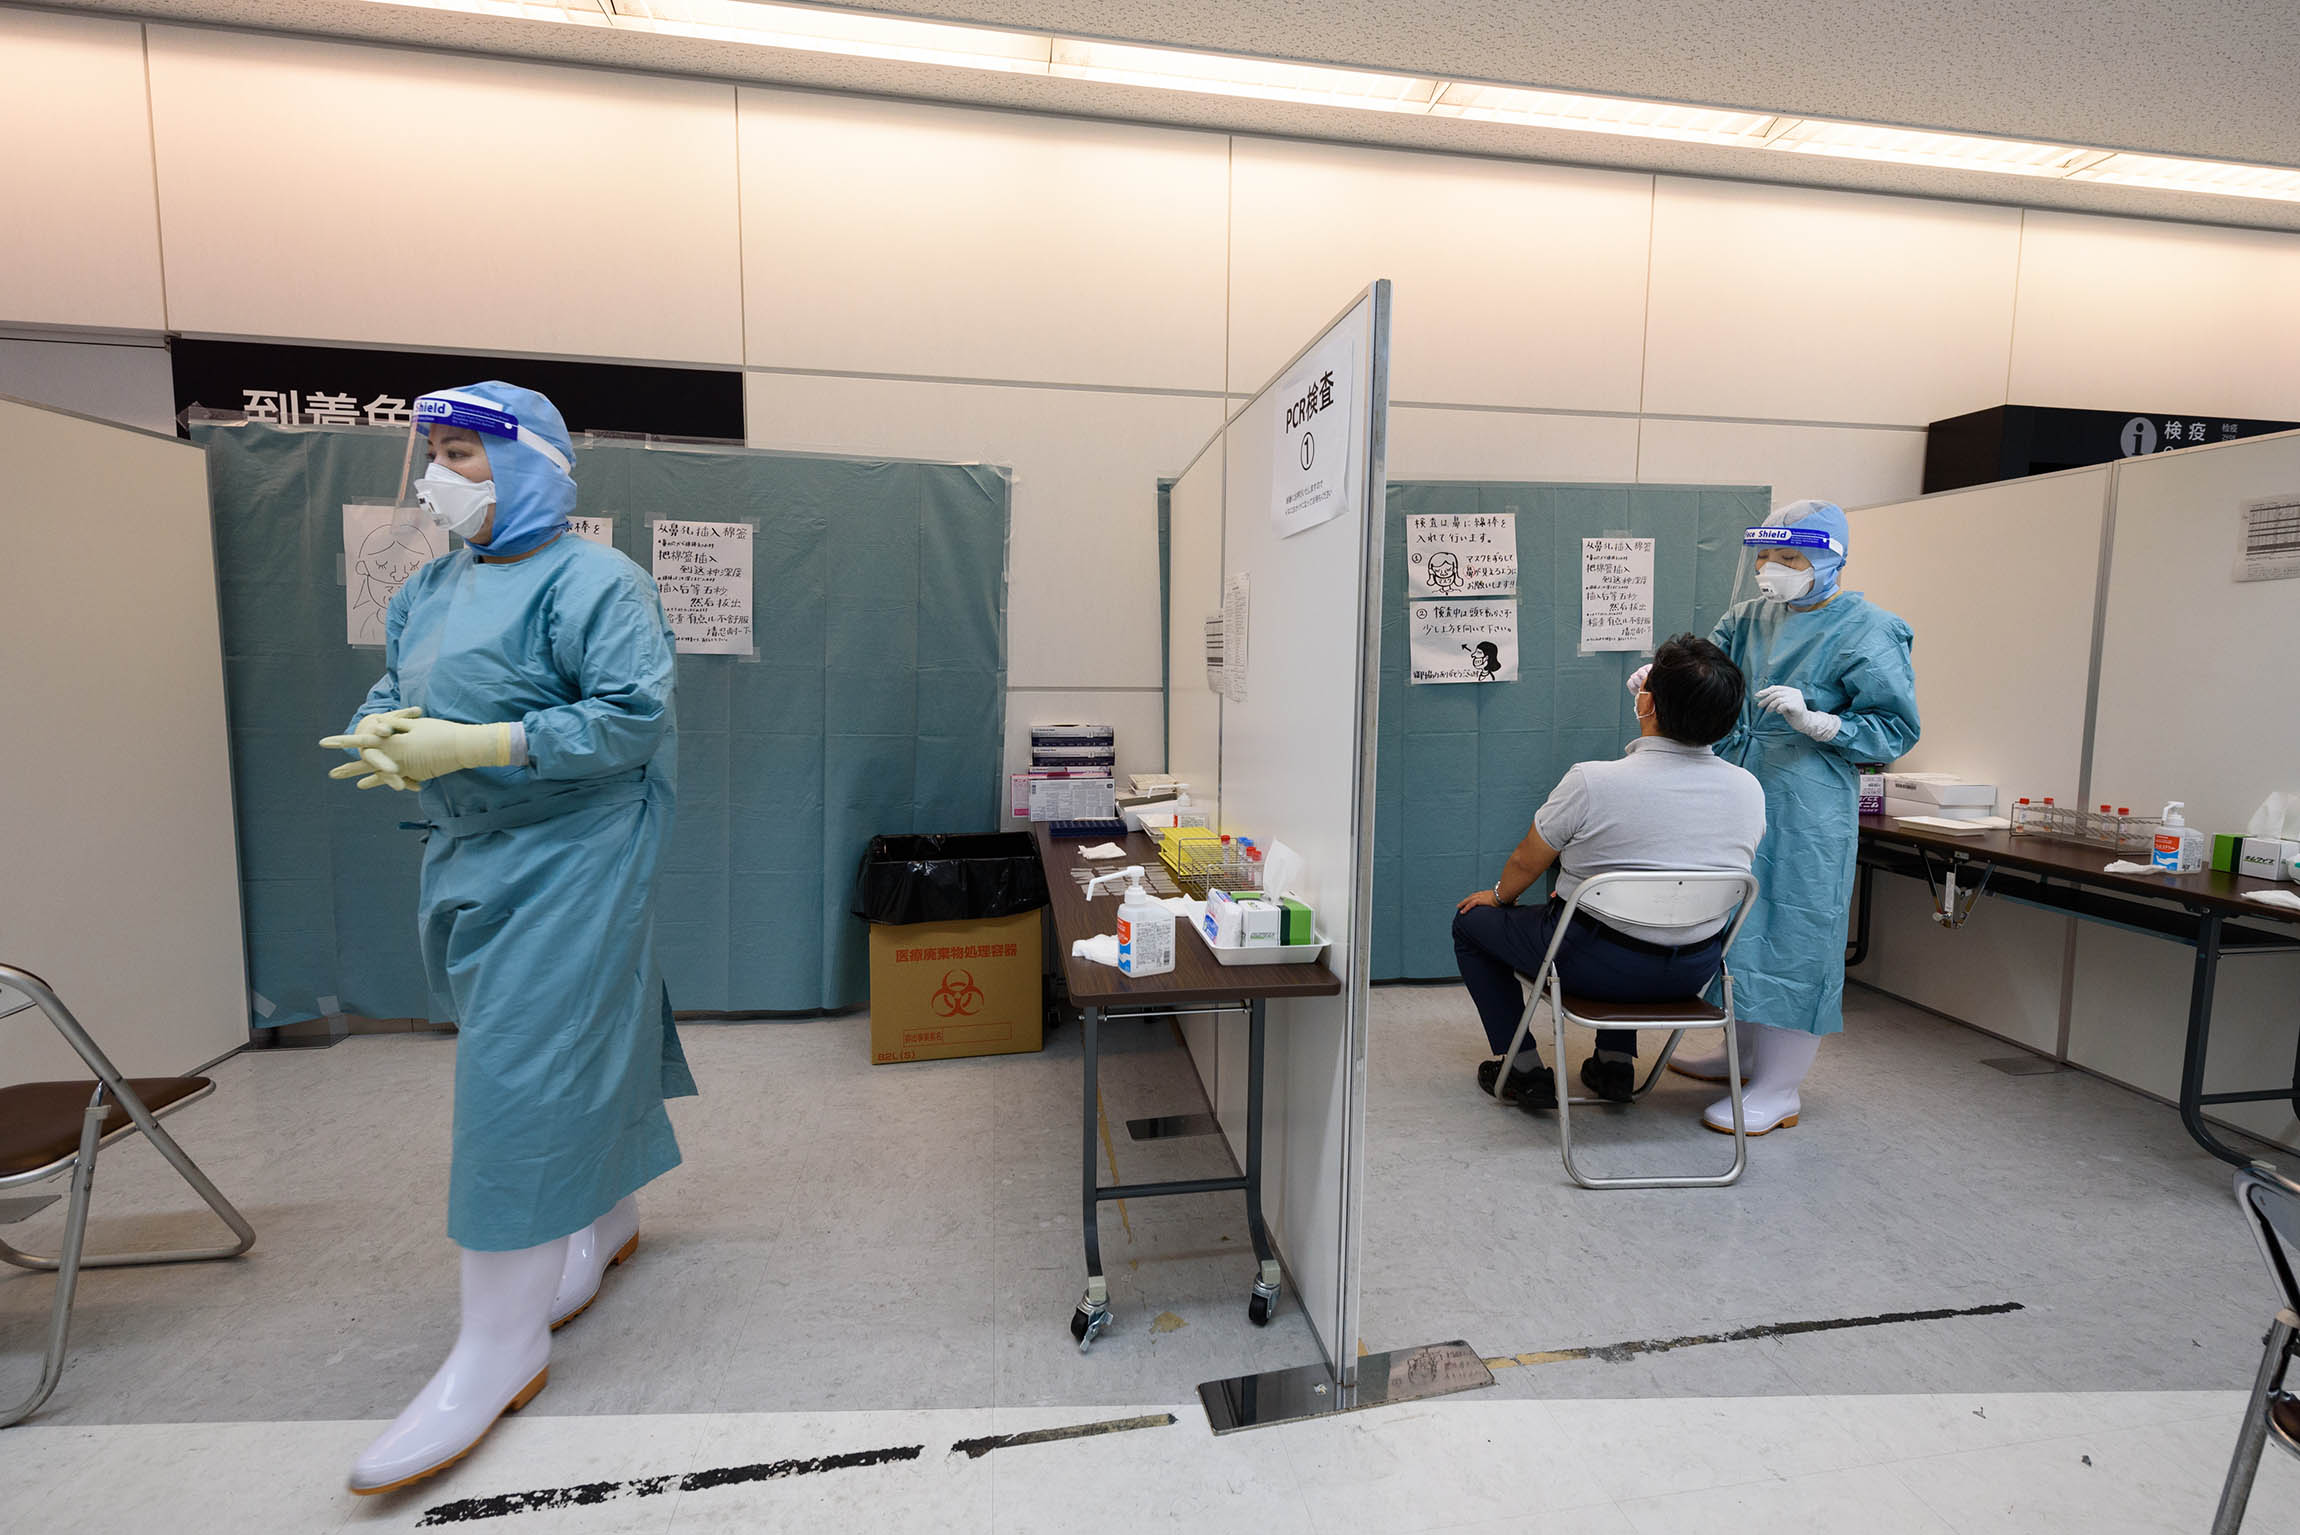 A medical worker collects a nasal swab from an arrival passenger to test for Covid-19 at a polymerase chain reaction (PCR) testing site in Narita, Chiba Prefecture, Japan, on Sunday, July 19, 2020.